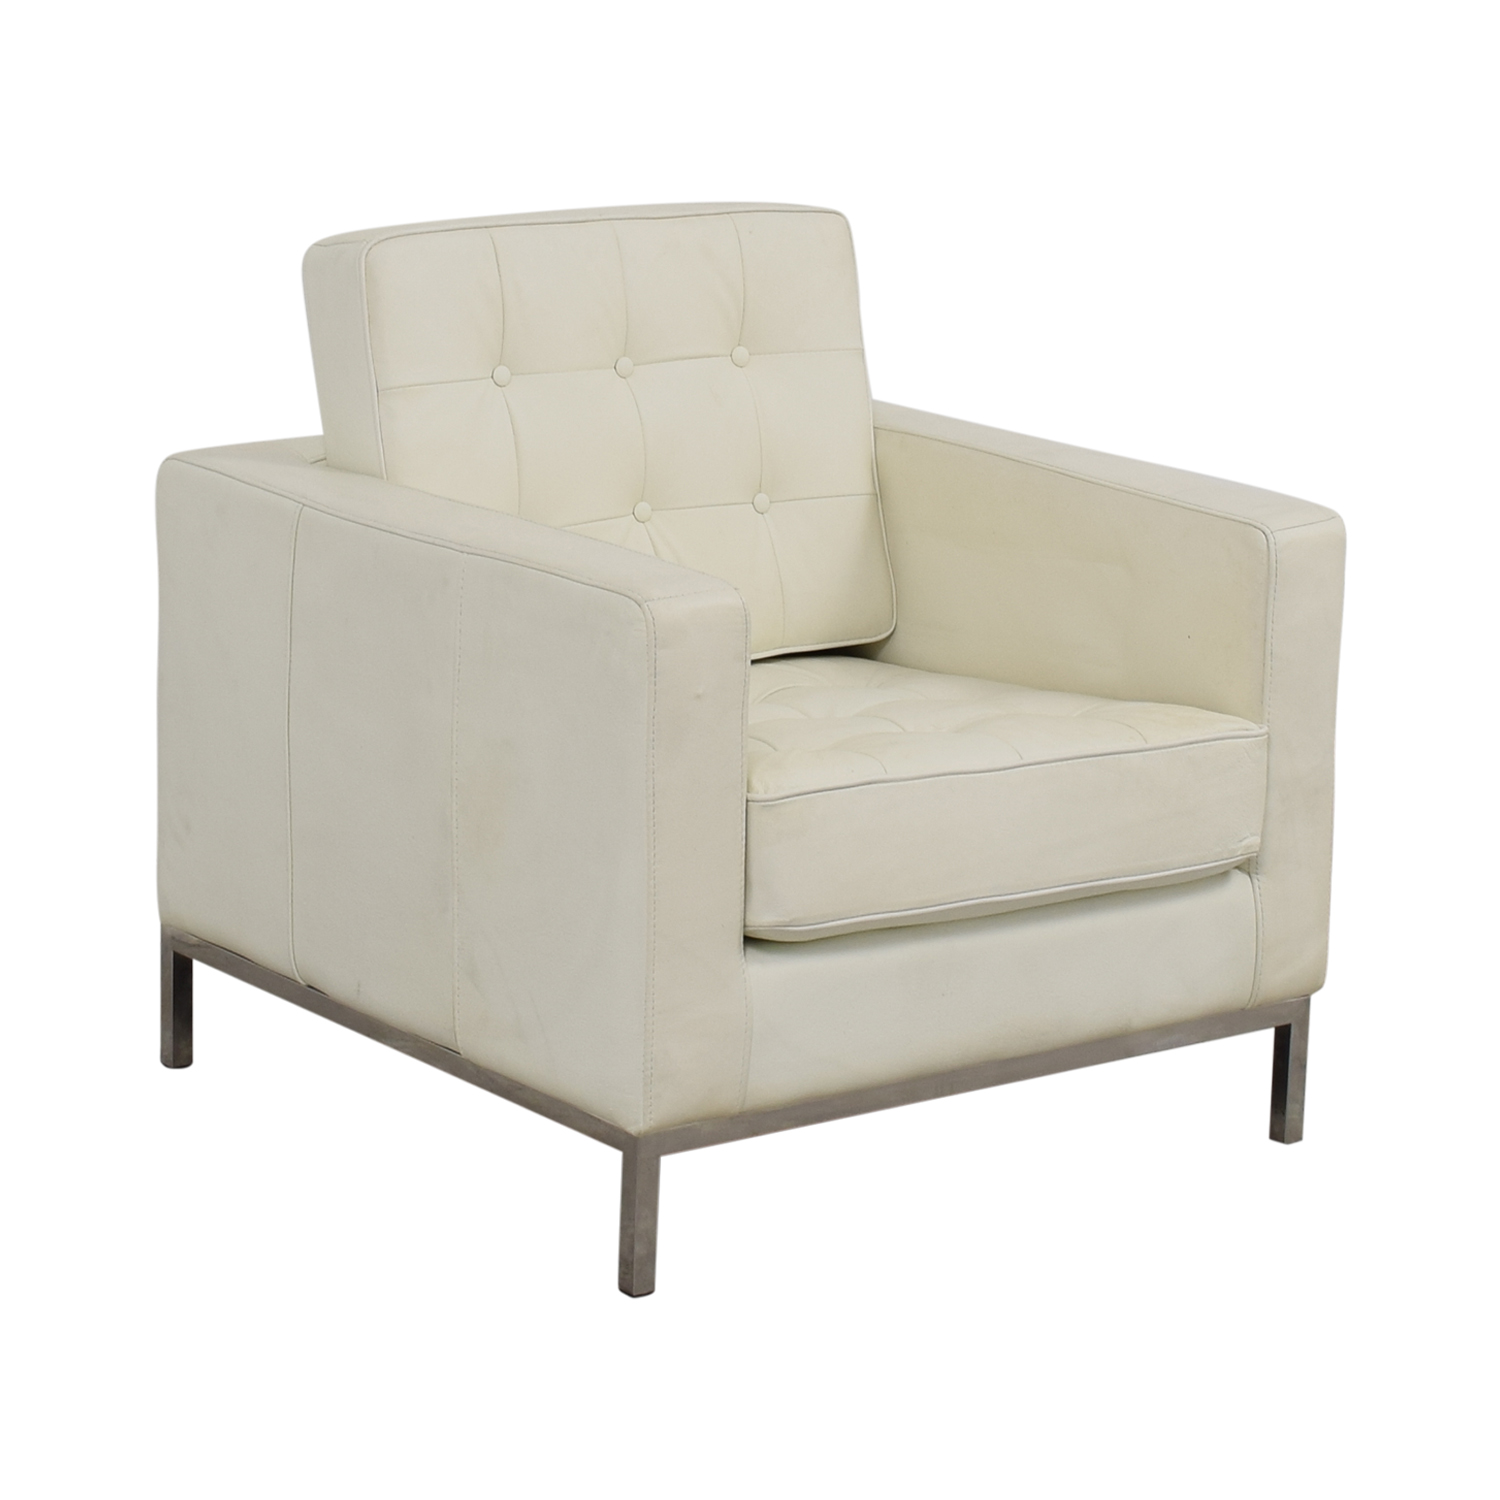 90 off white leather tufted accent armchair chairs